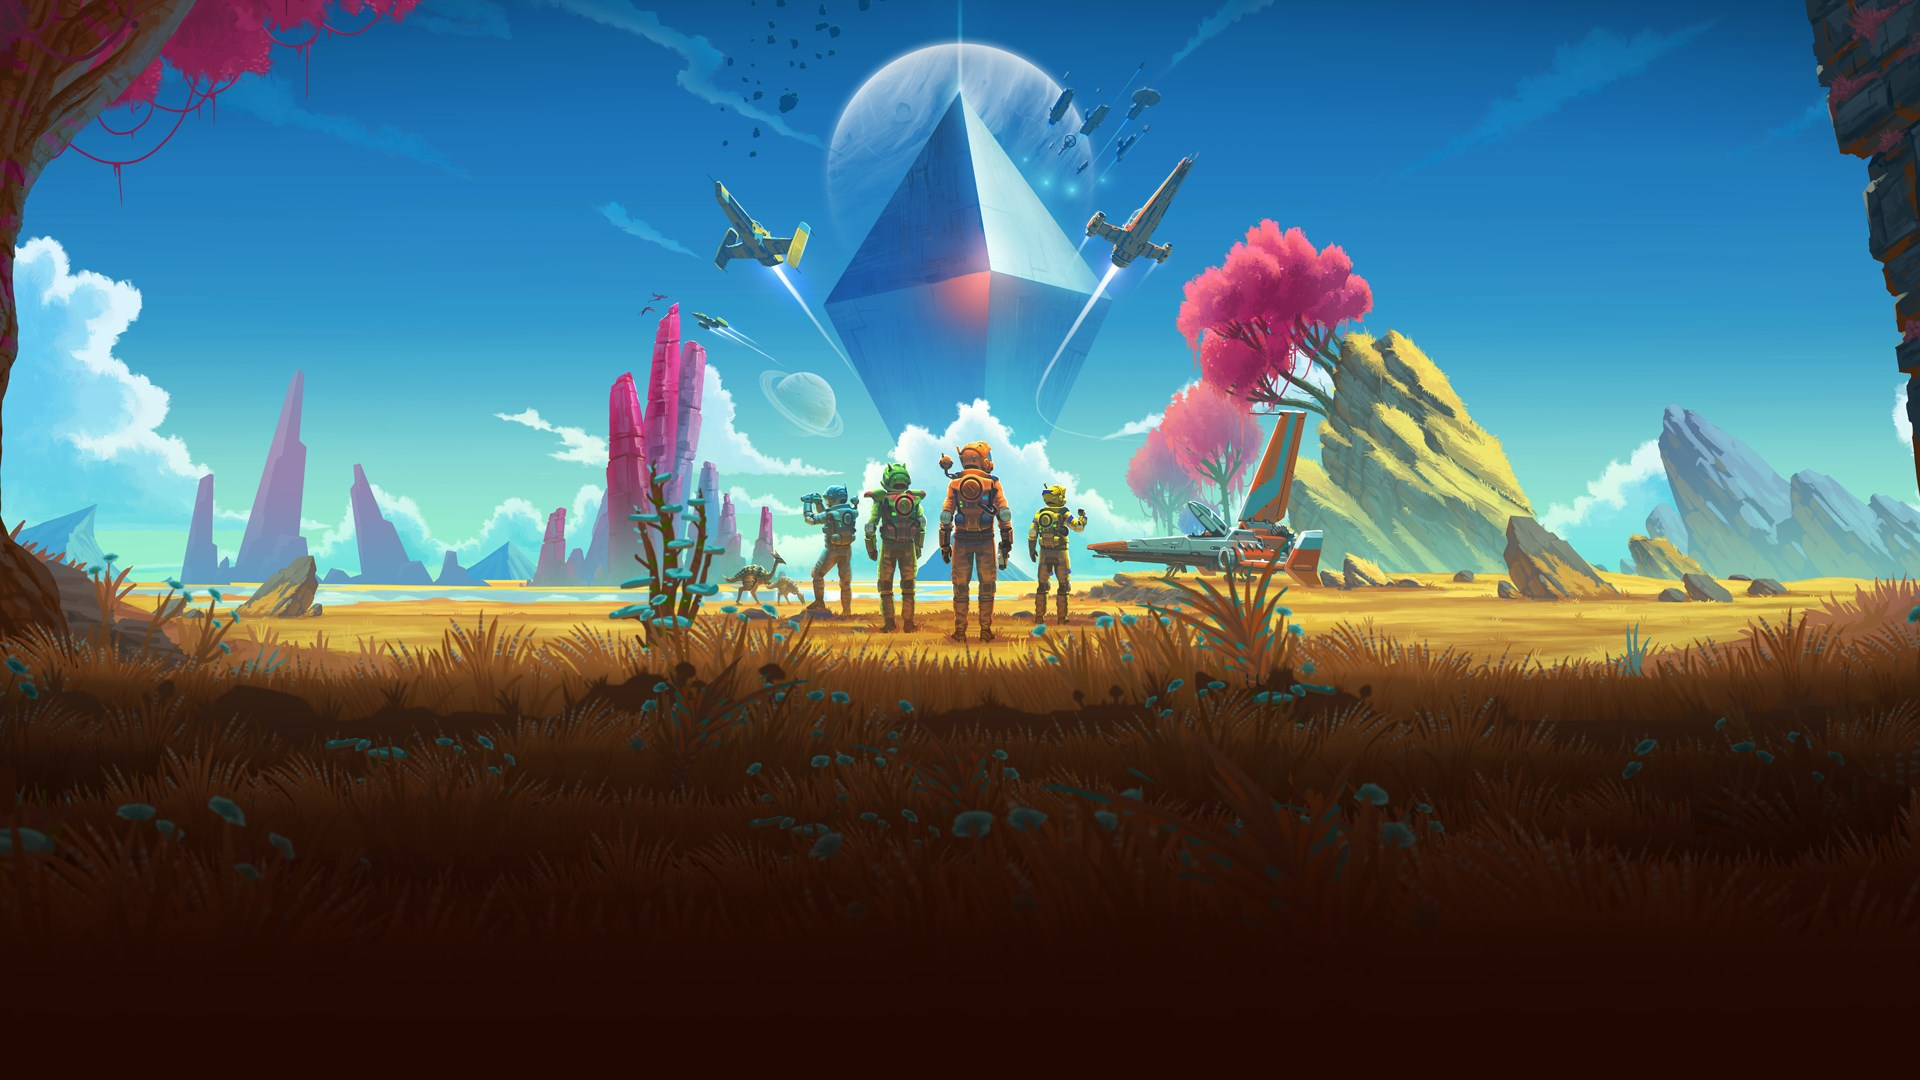 <em>No Man's Sky</em> was largely considered half-baked at launch, but frequent updates have attracted a continuing player base.